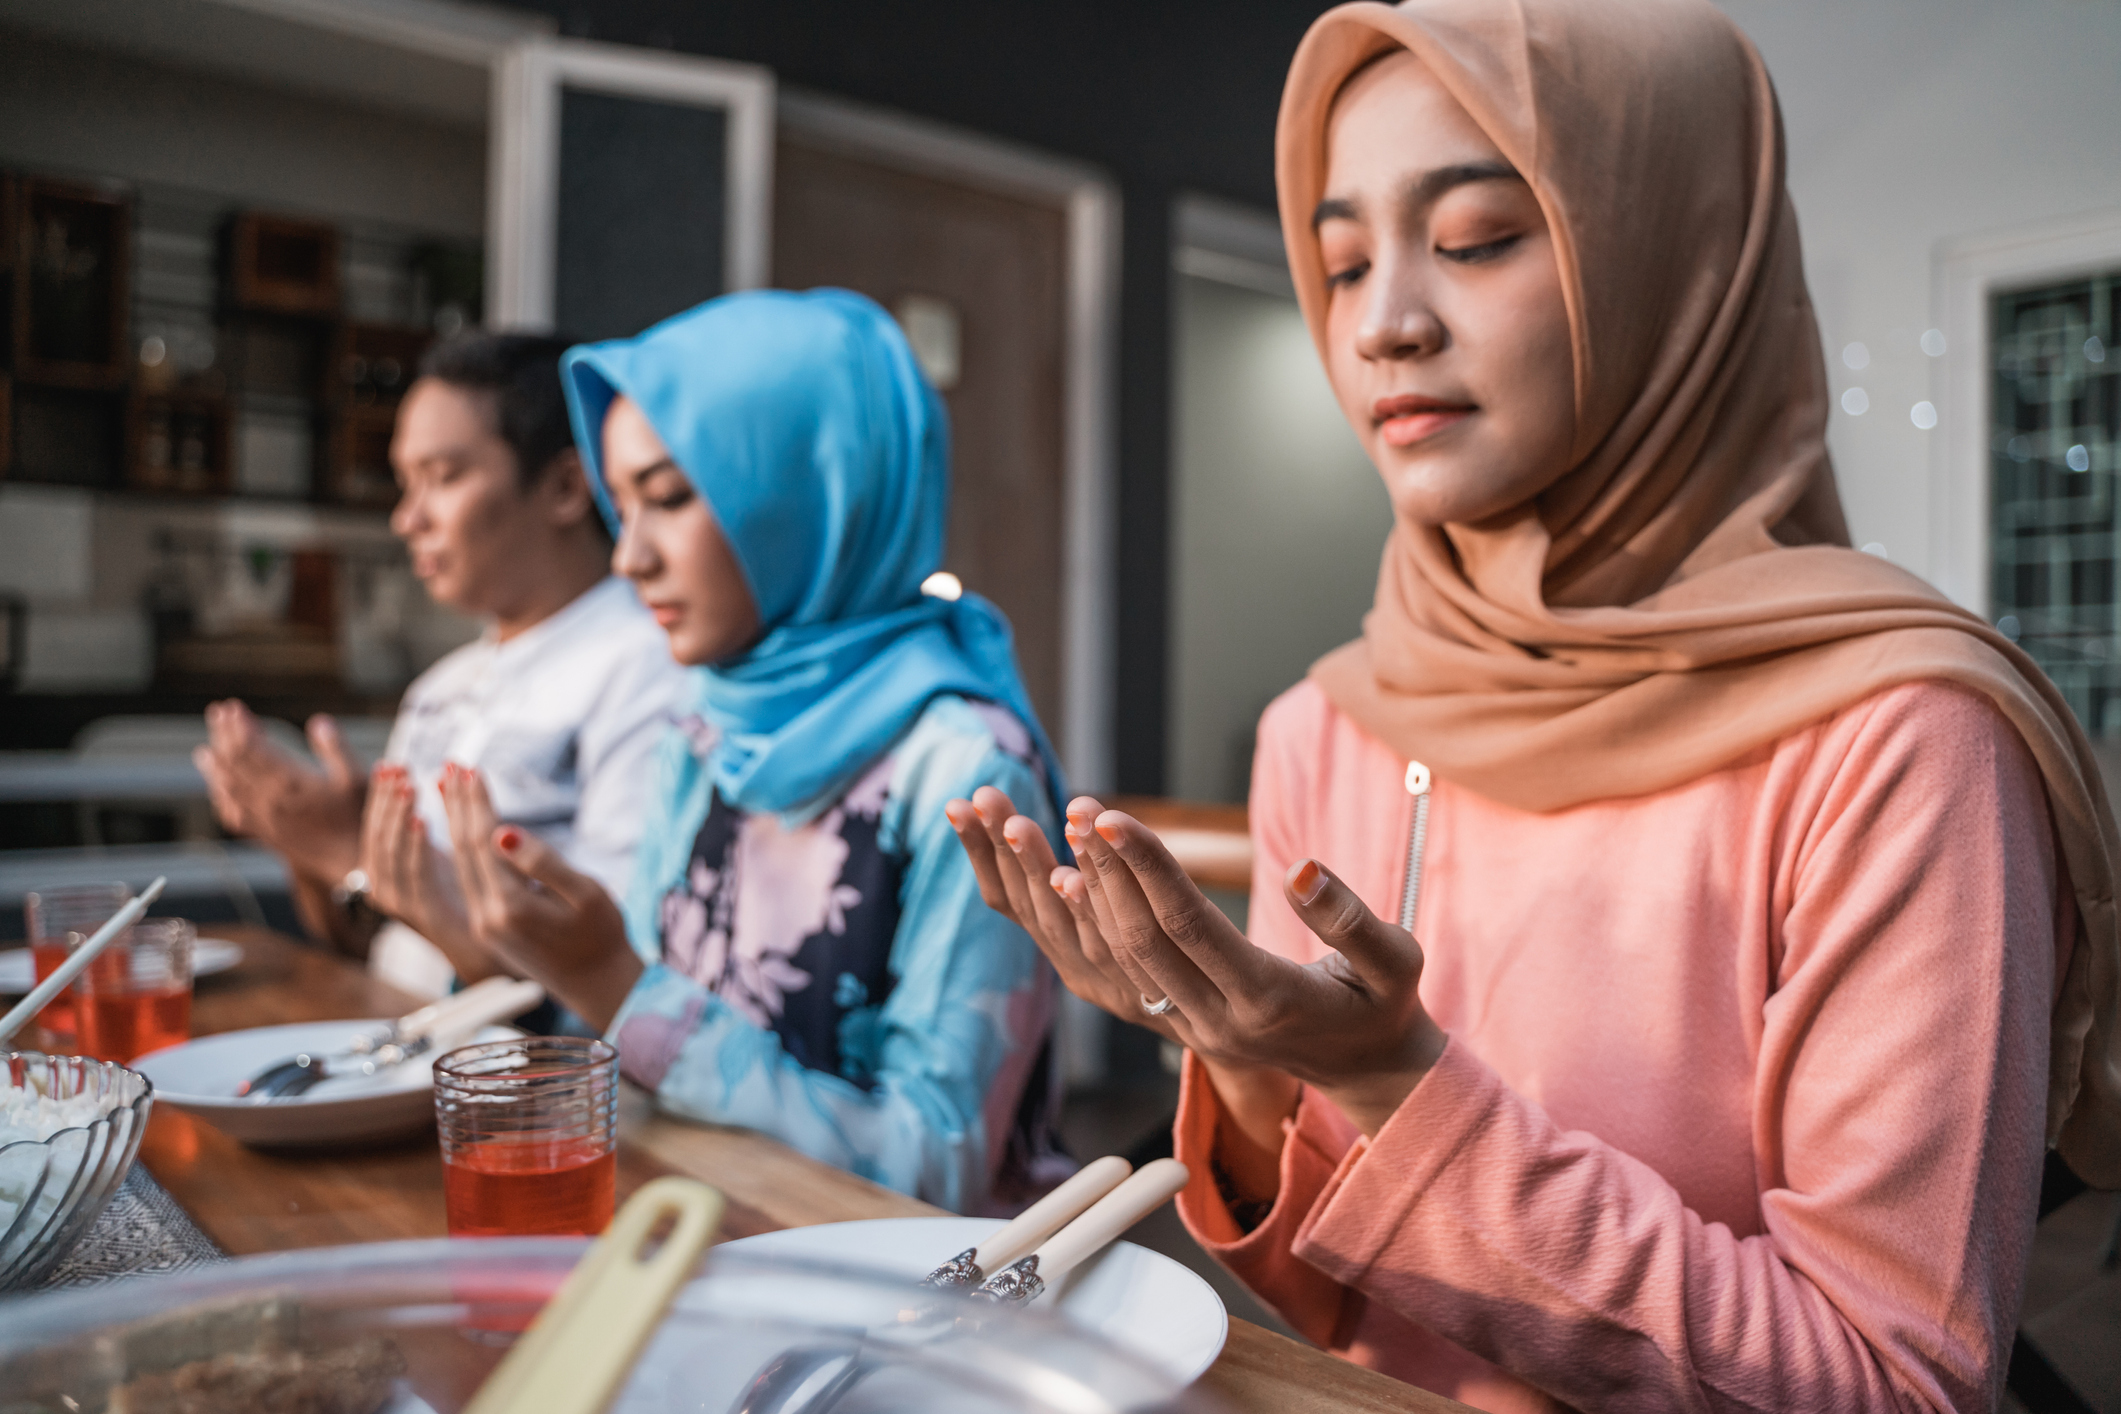 Hijab women and a man pray together before meals, a fast breaking meal served on a table in backyard